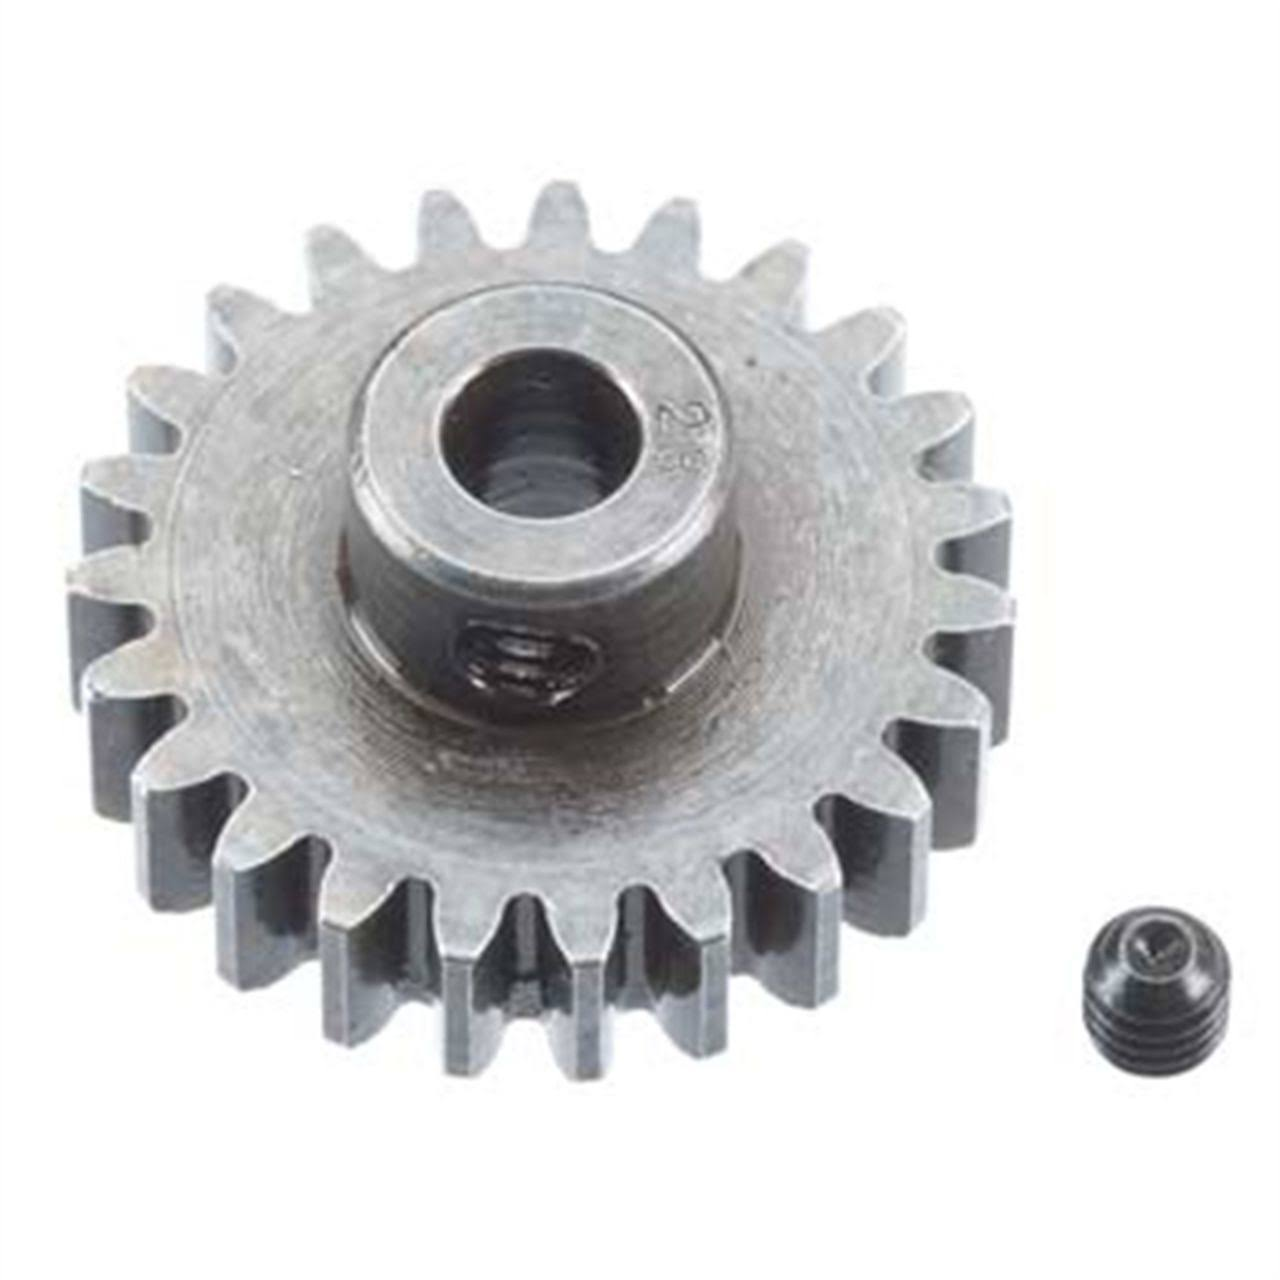 Robinson Racing Pinion Gear - Extra Hard, 5mm, 23T